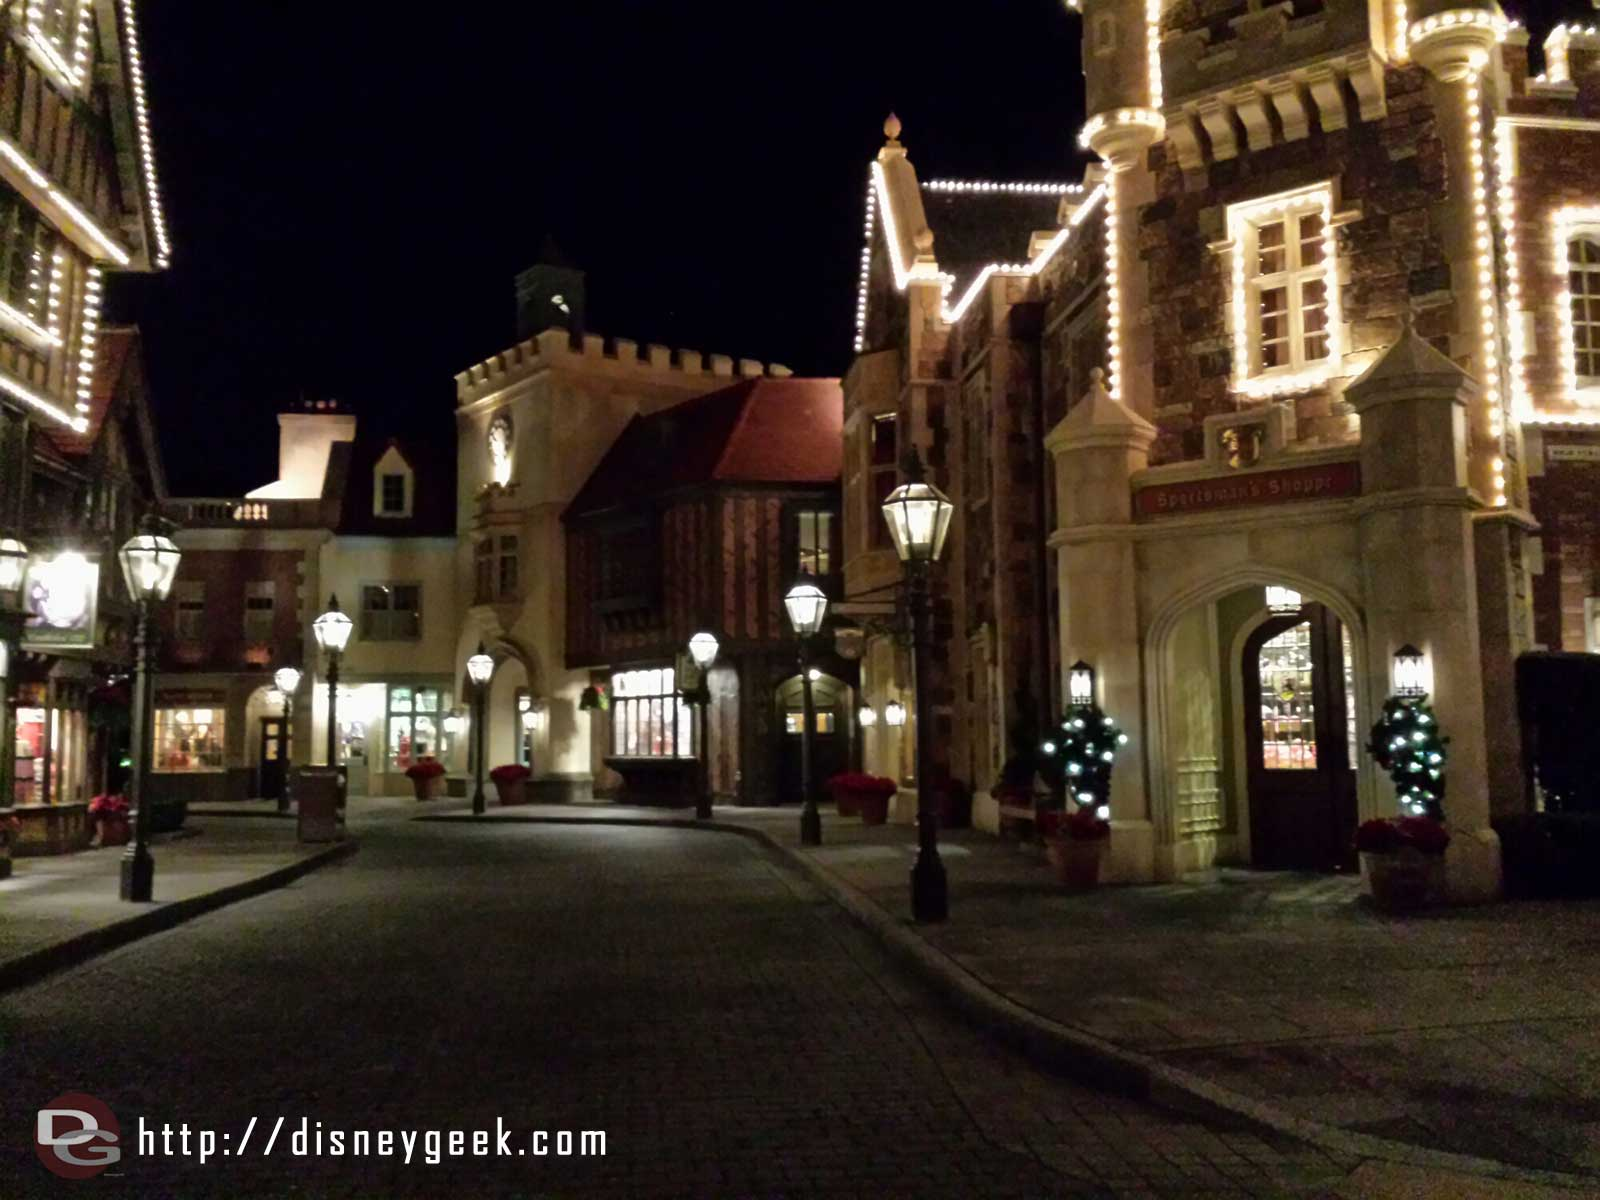 Passing through a quiet UK on the way out #Epcot World Showcase